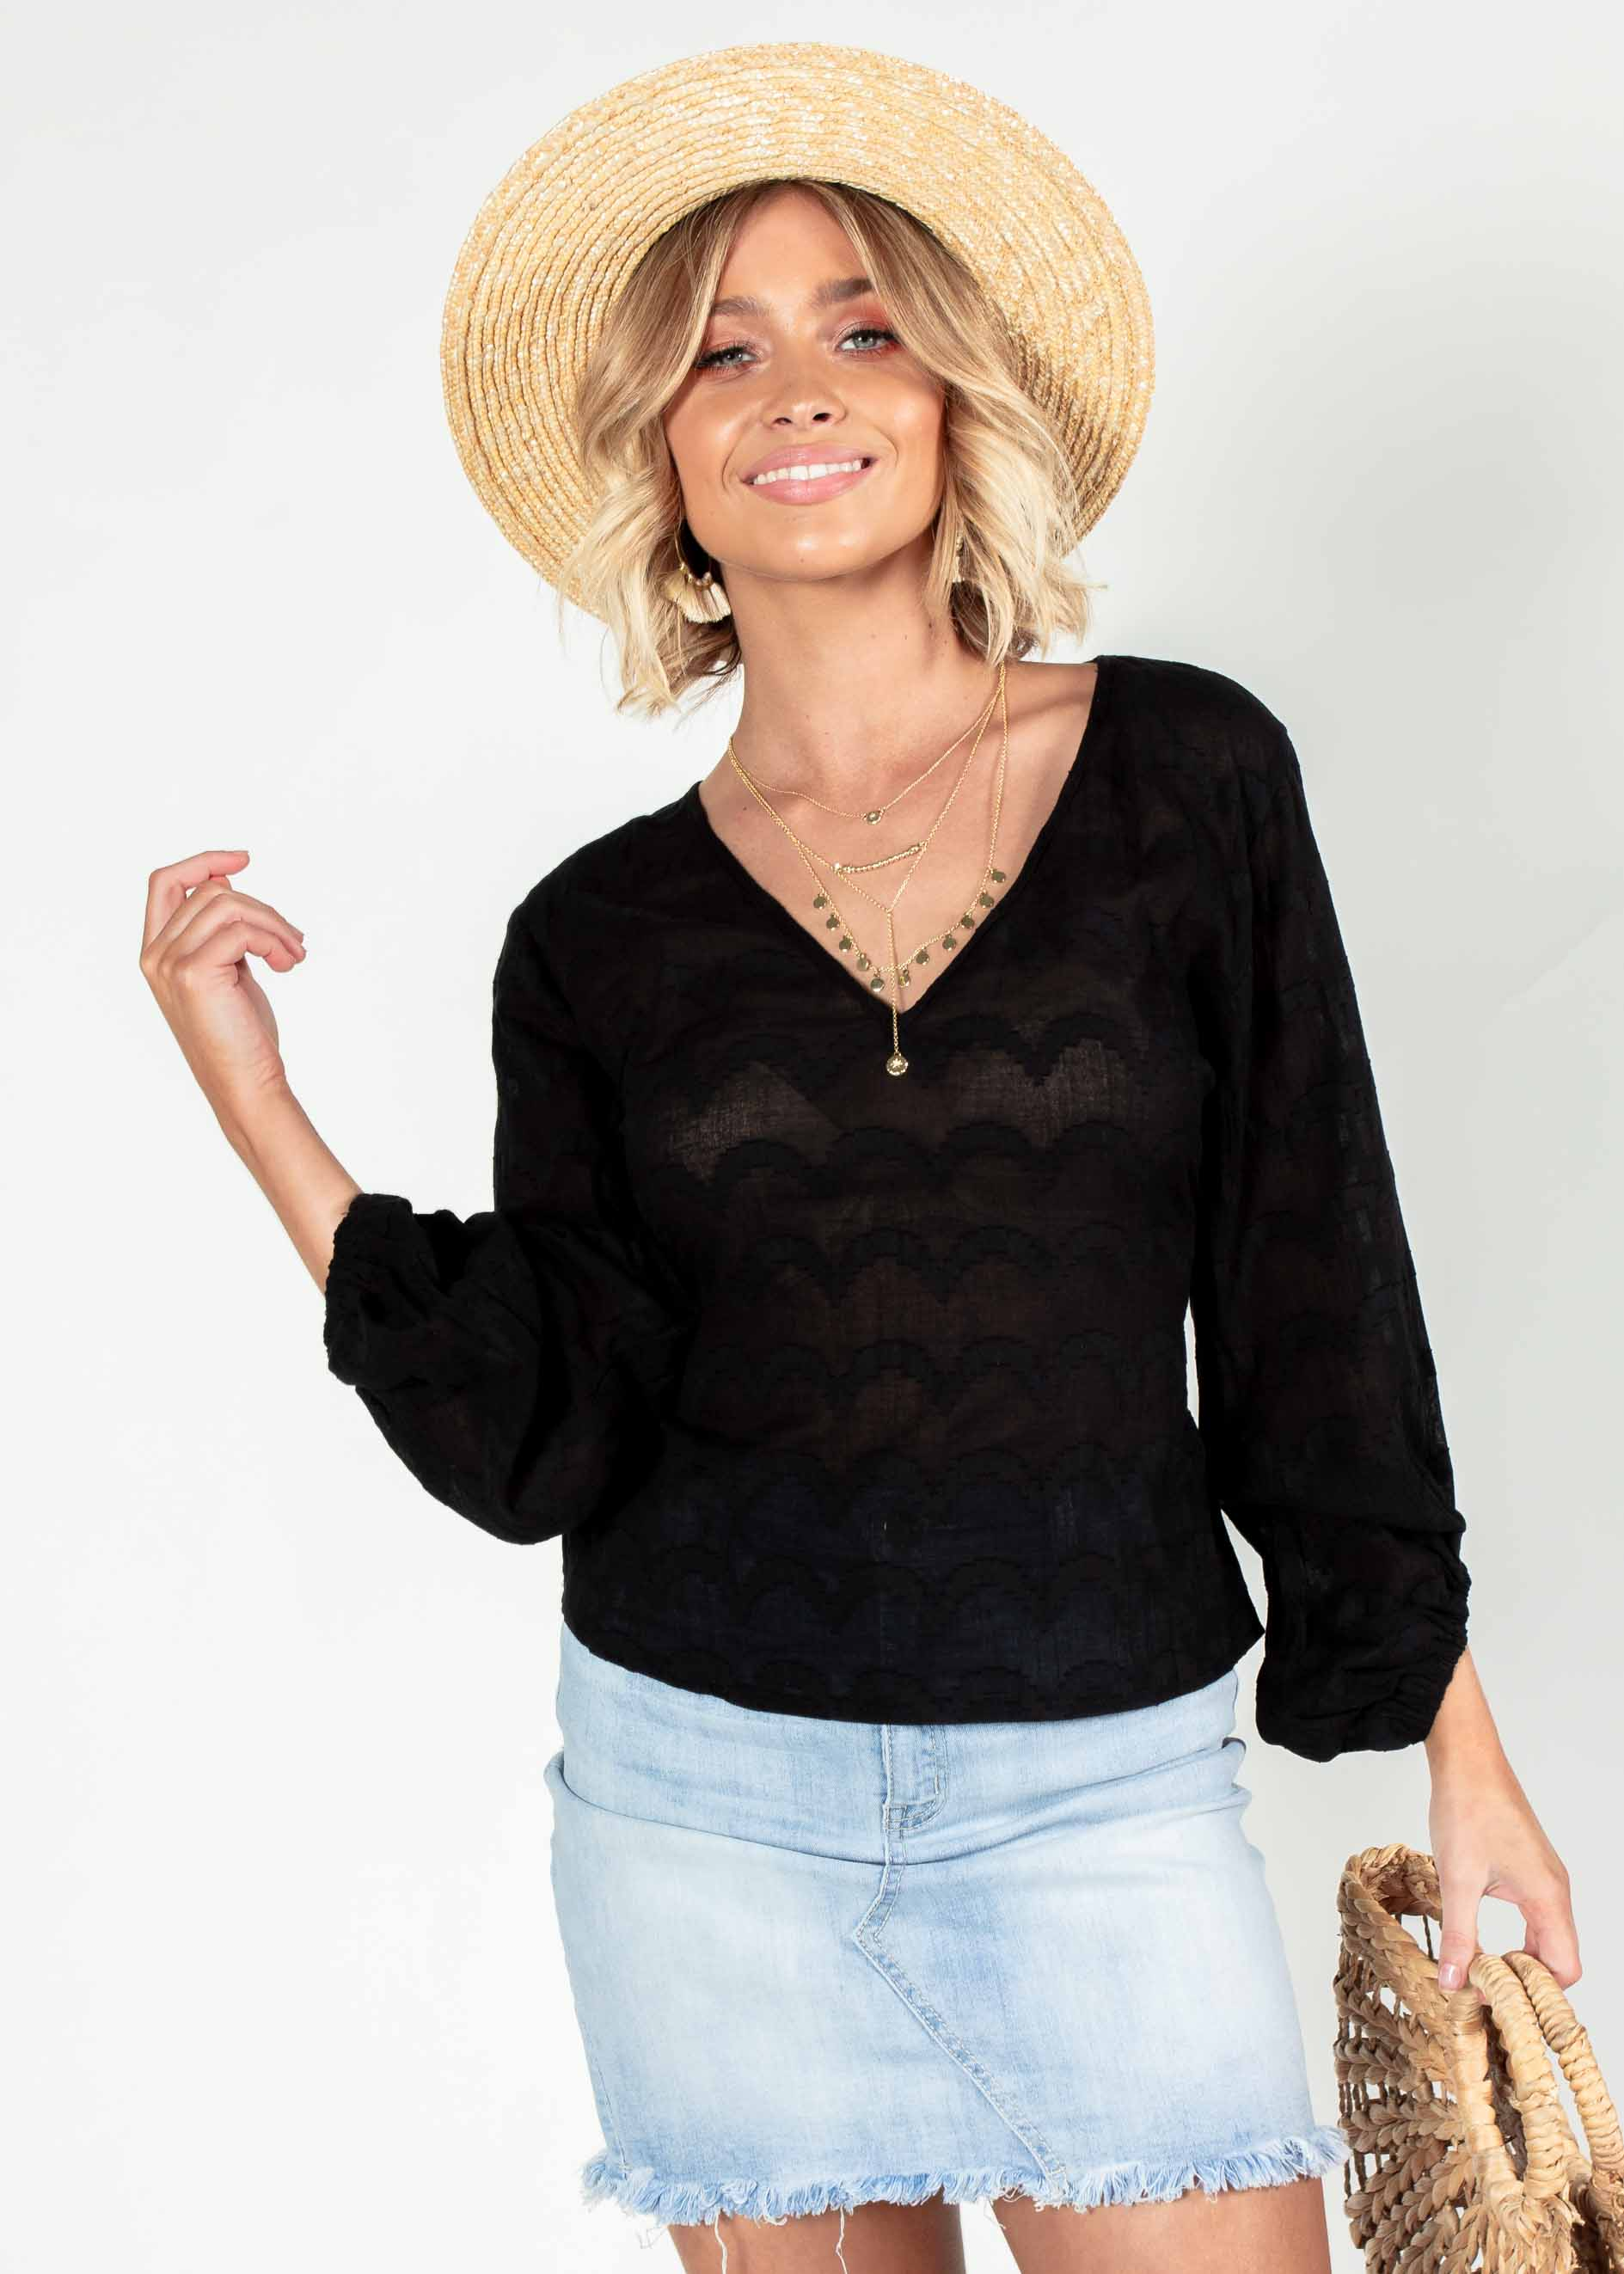 Meant To Be Tie Blouse - Black